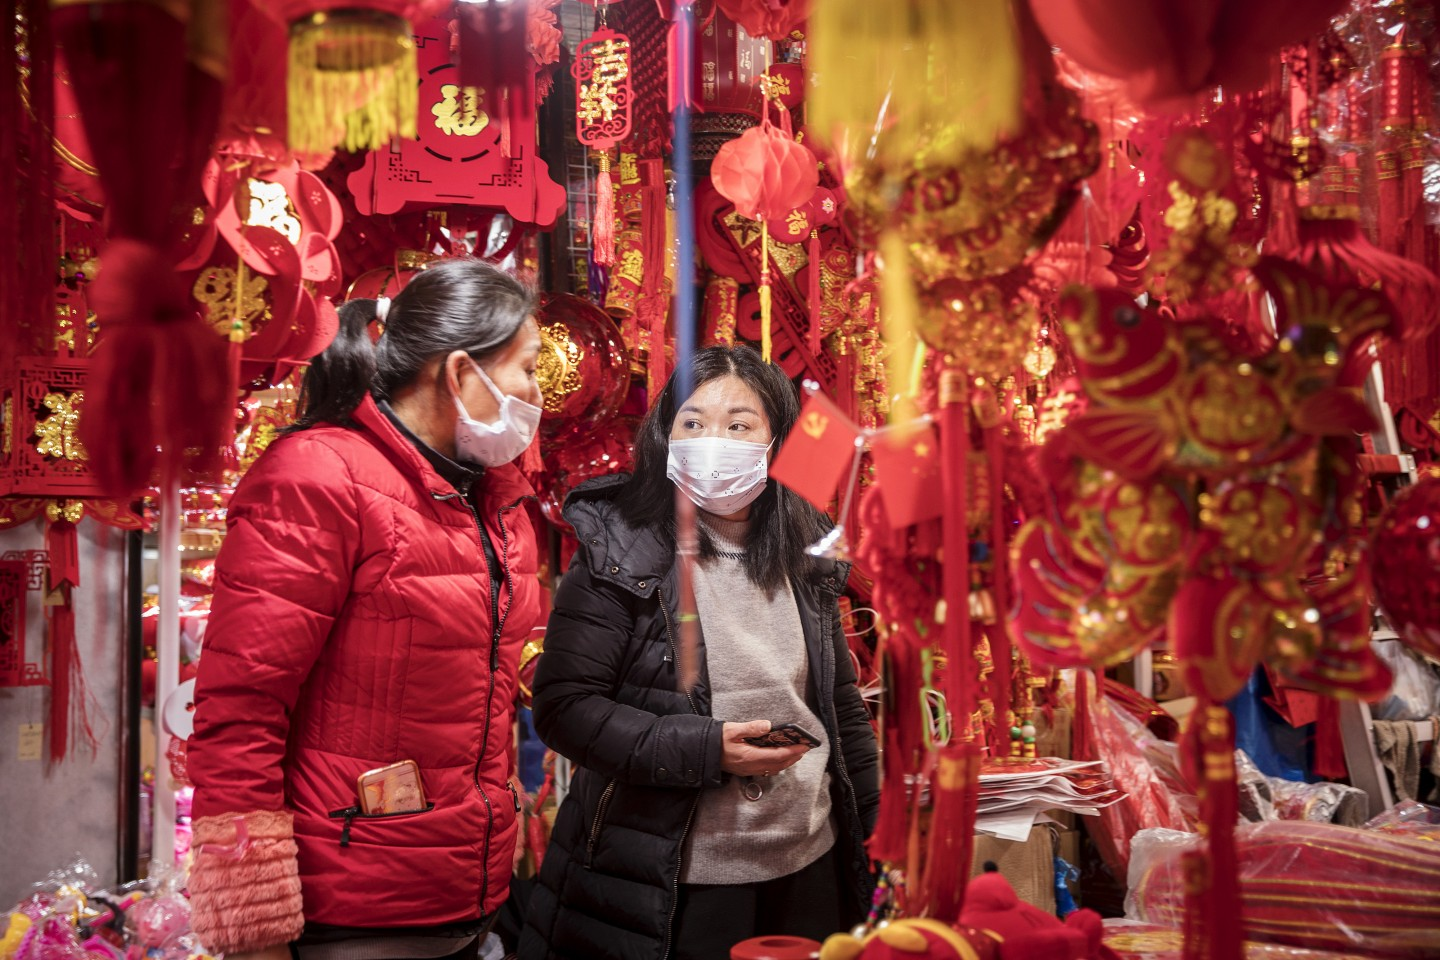 The Chinese New Year is normally a joyous celebration, but it has now been coloured with tension and anxiety due to the Wuhan coronavirus outbreak. (Qilai Shen/Bloomberg)